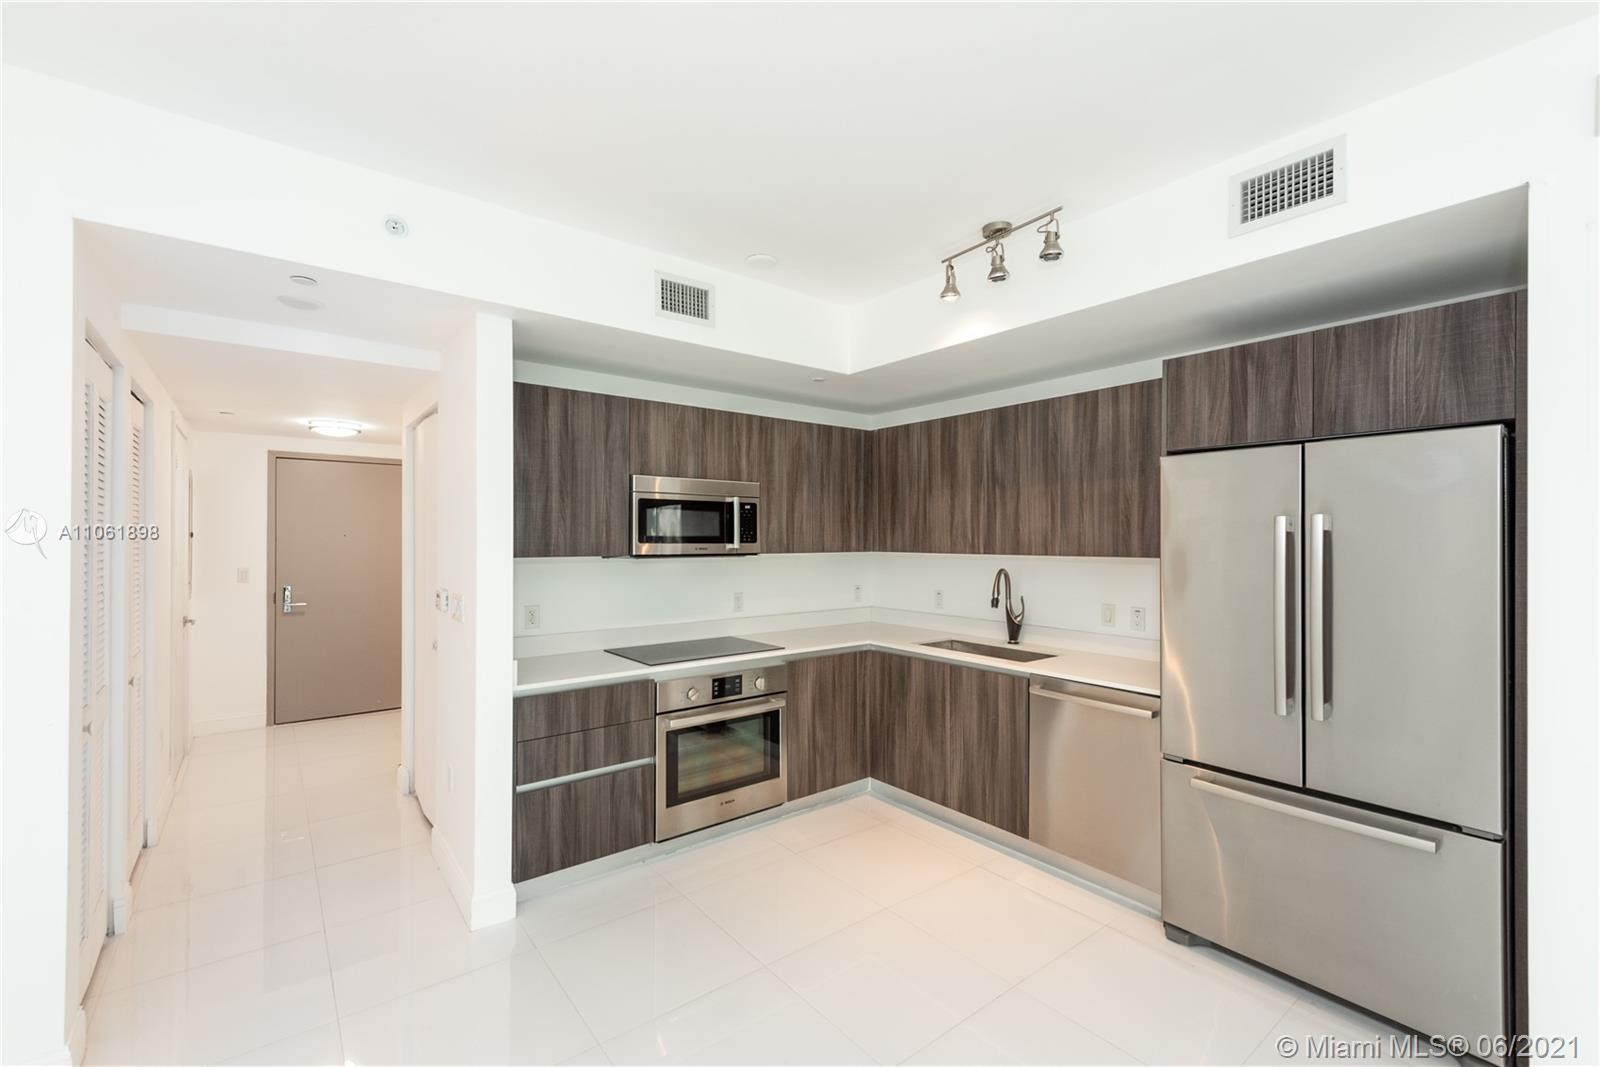 Welcome to Aria On The Bay! This beautiful apartment is located in the heart of Miami & is exquisite